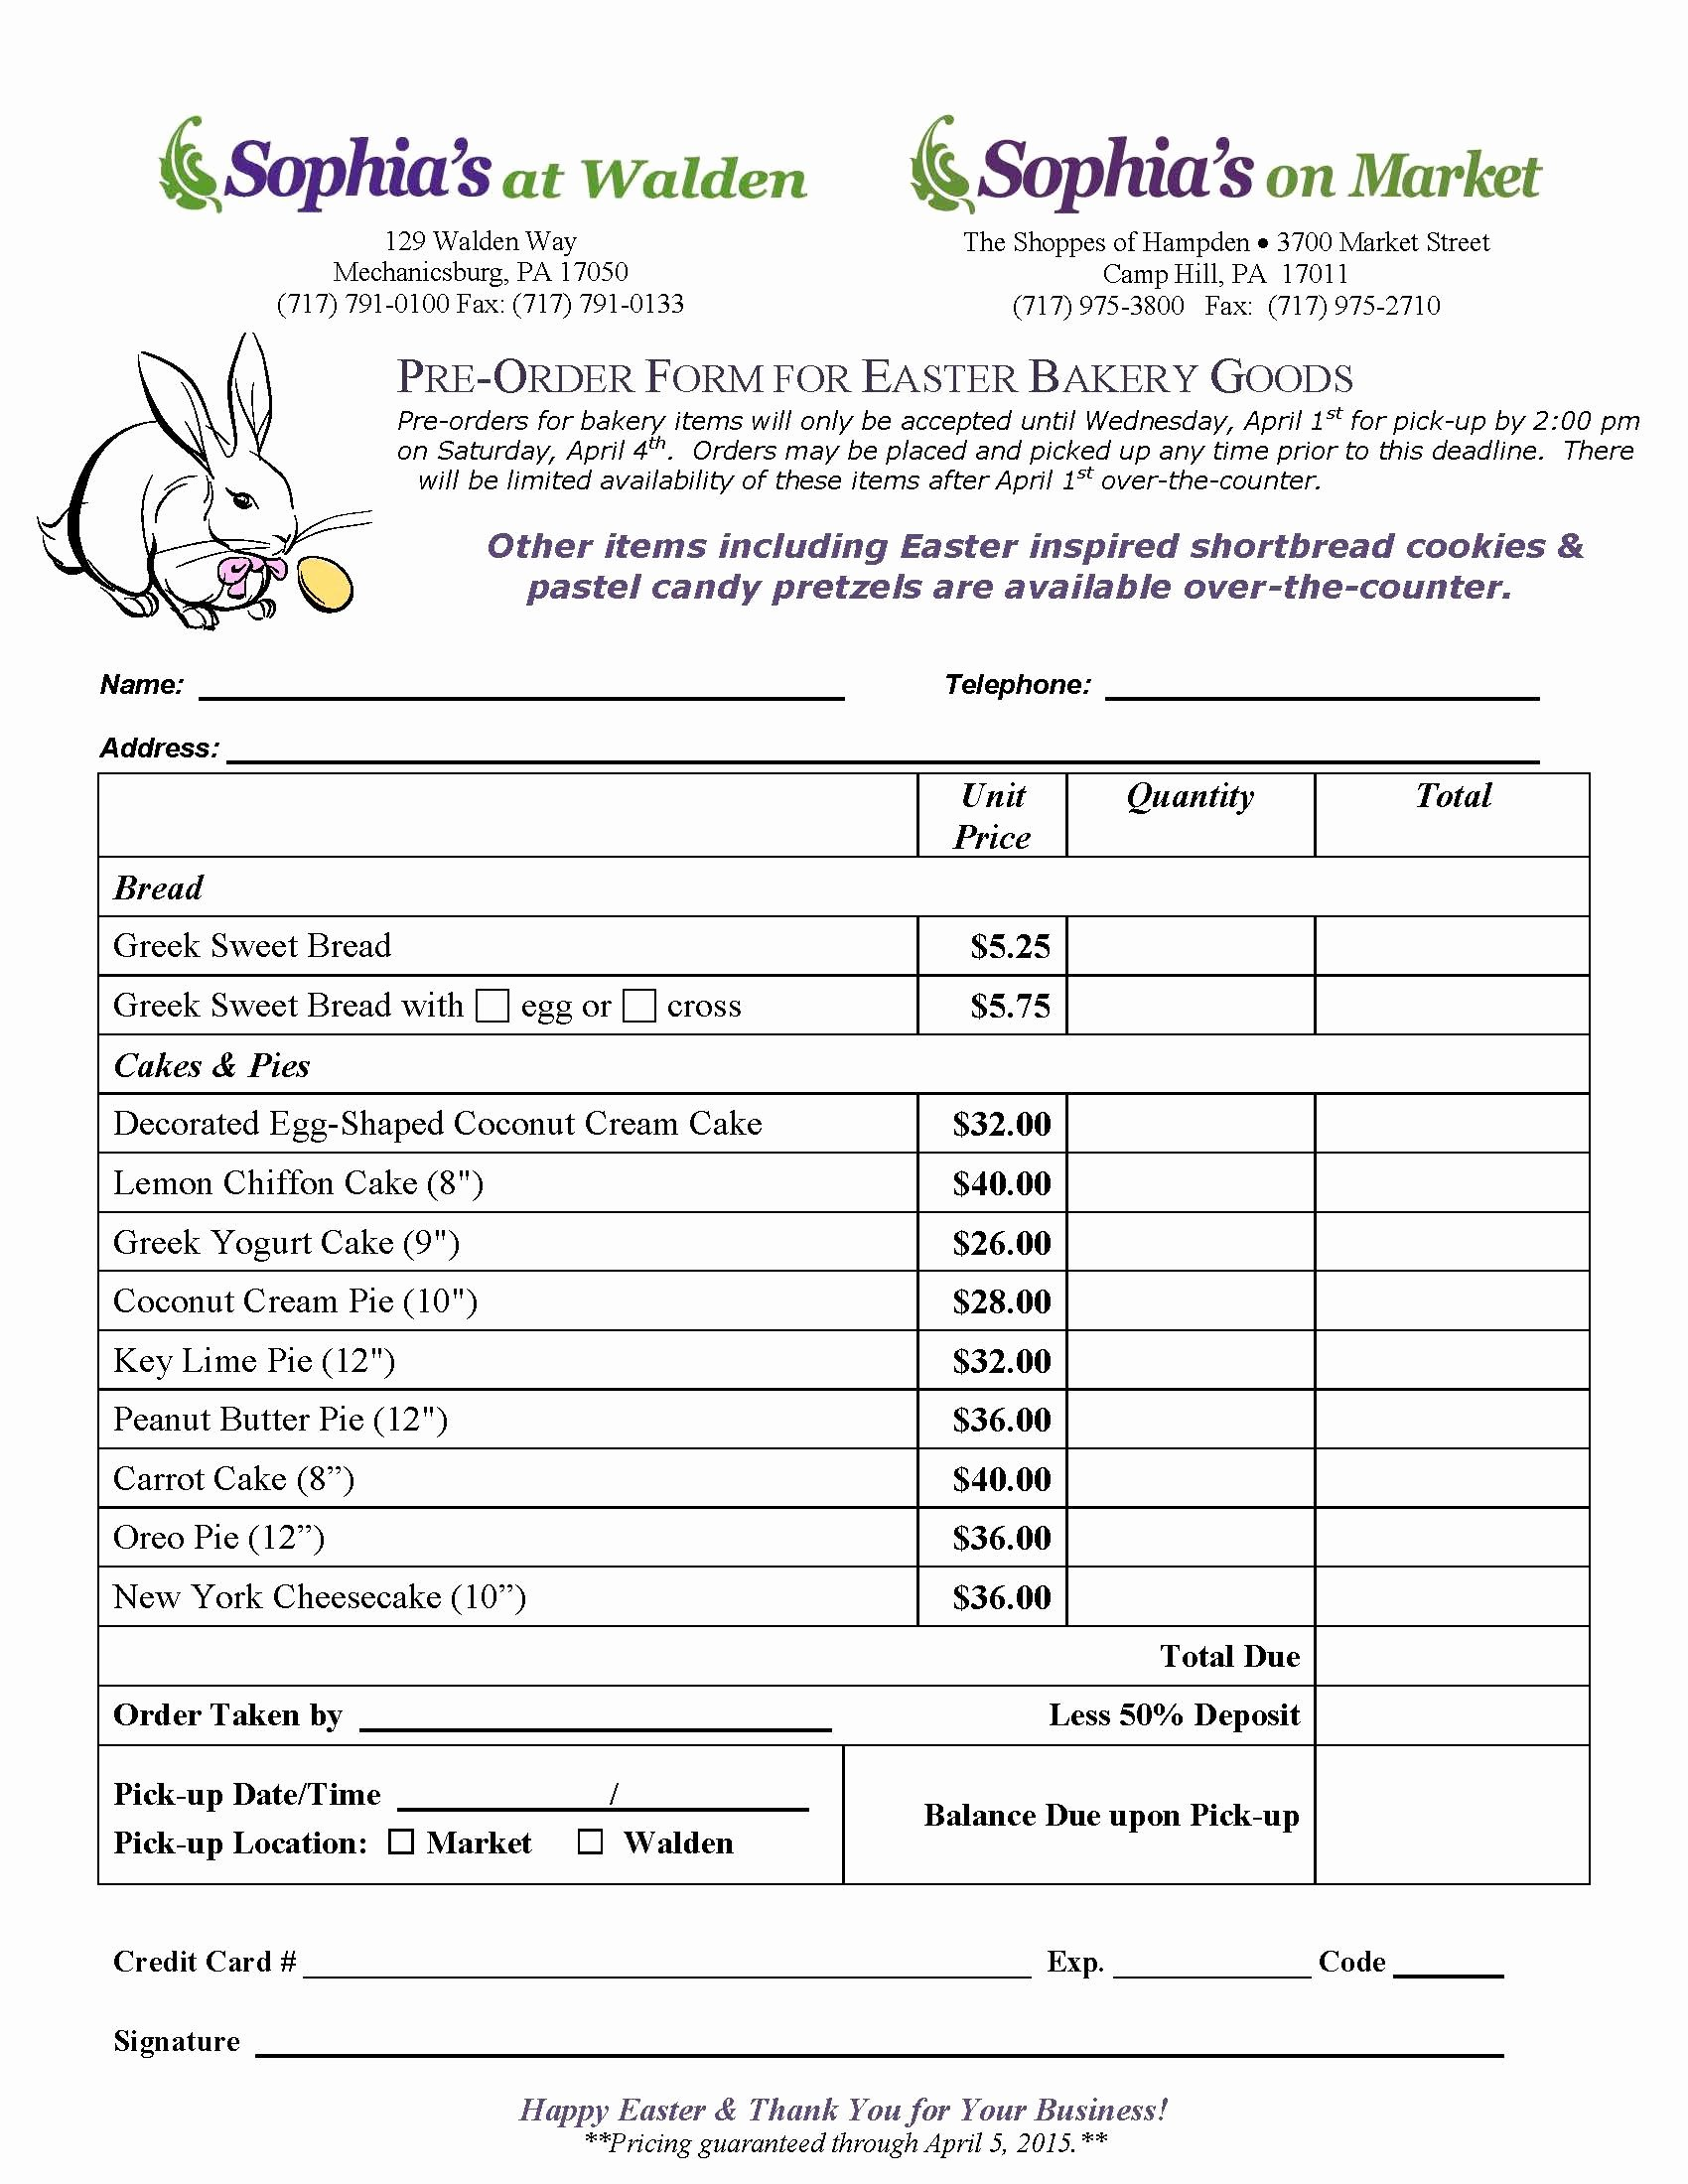 Cake order form Template Word Fresh Easter Bakery order form sophia S at Walden Your